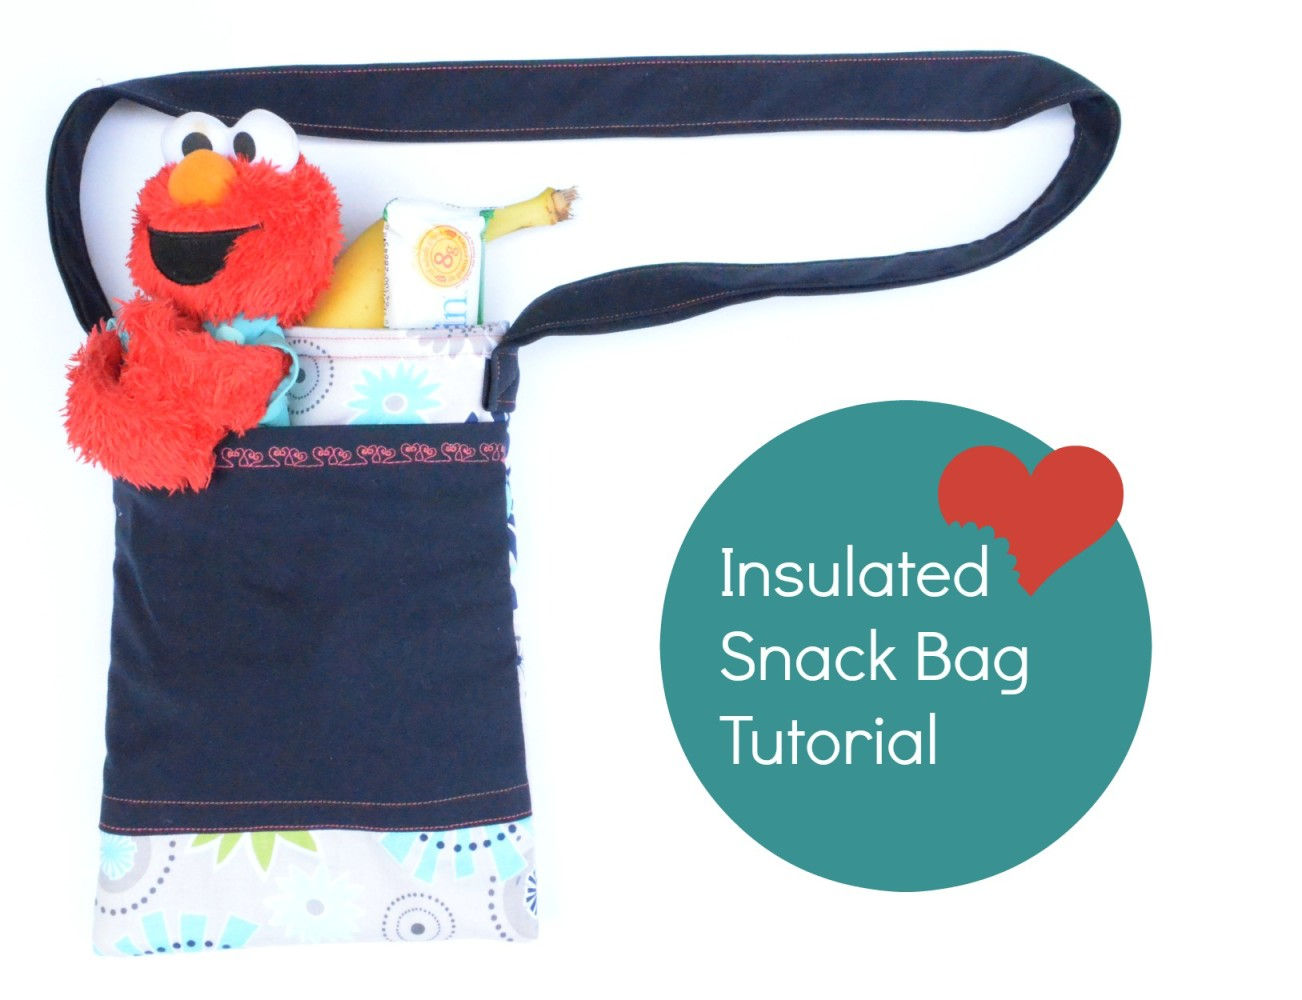 Insulated snack bag pattern